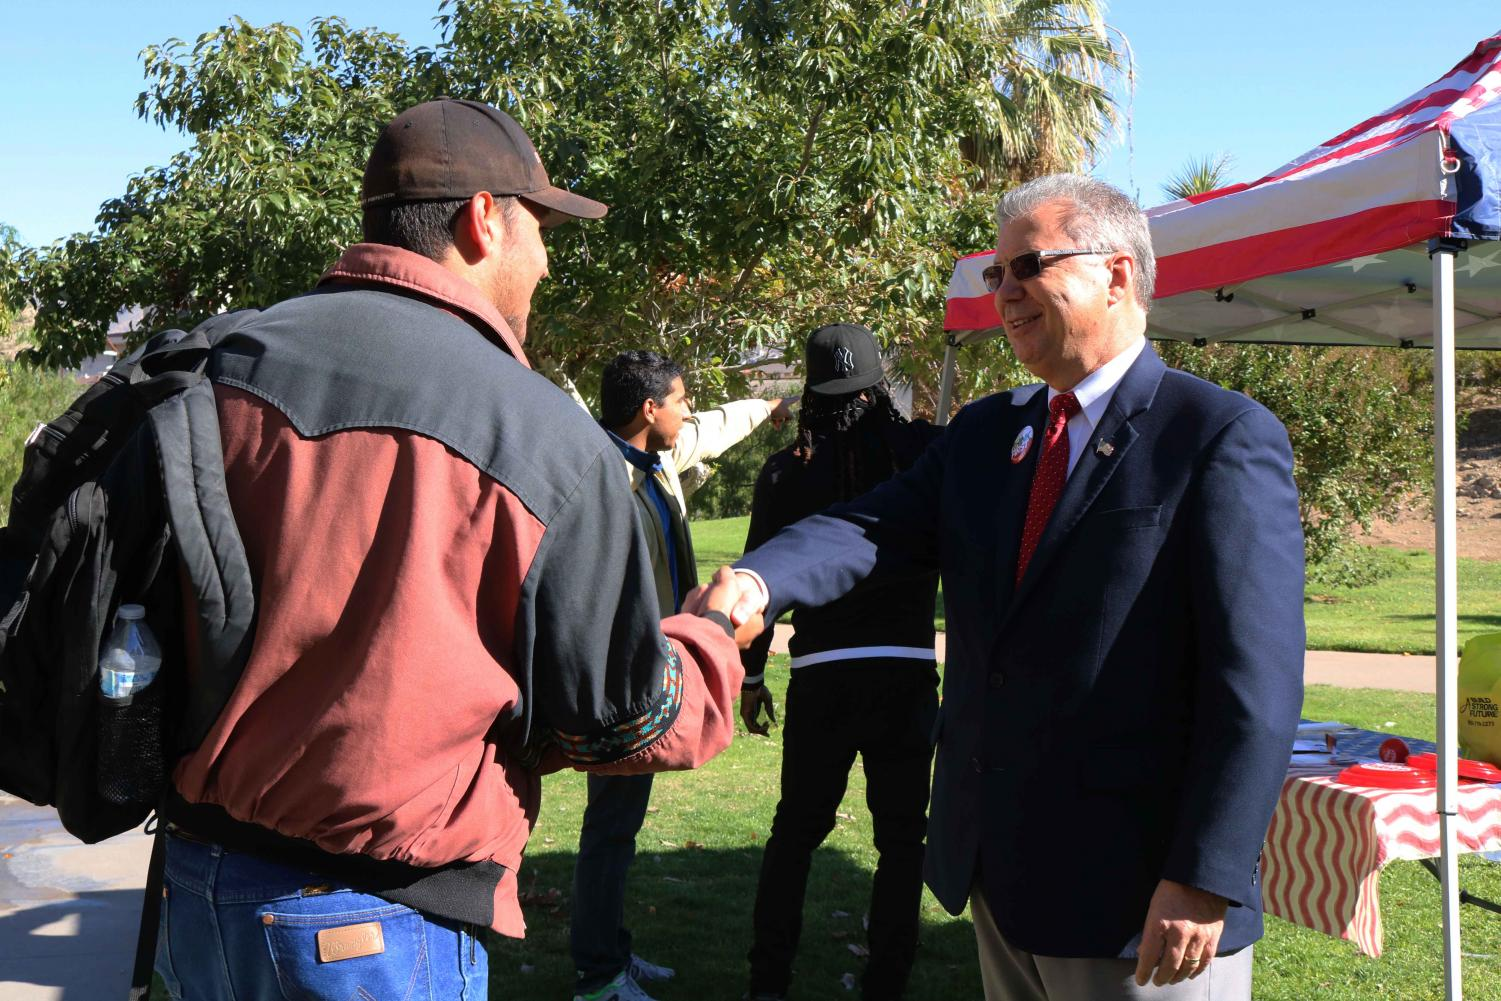 Candidate Rick Seeberger shakes hands with formal student.